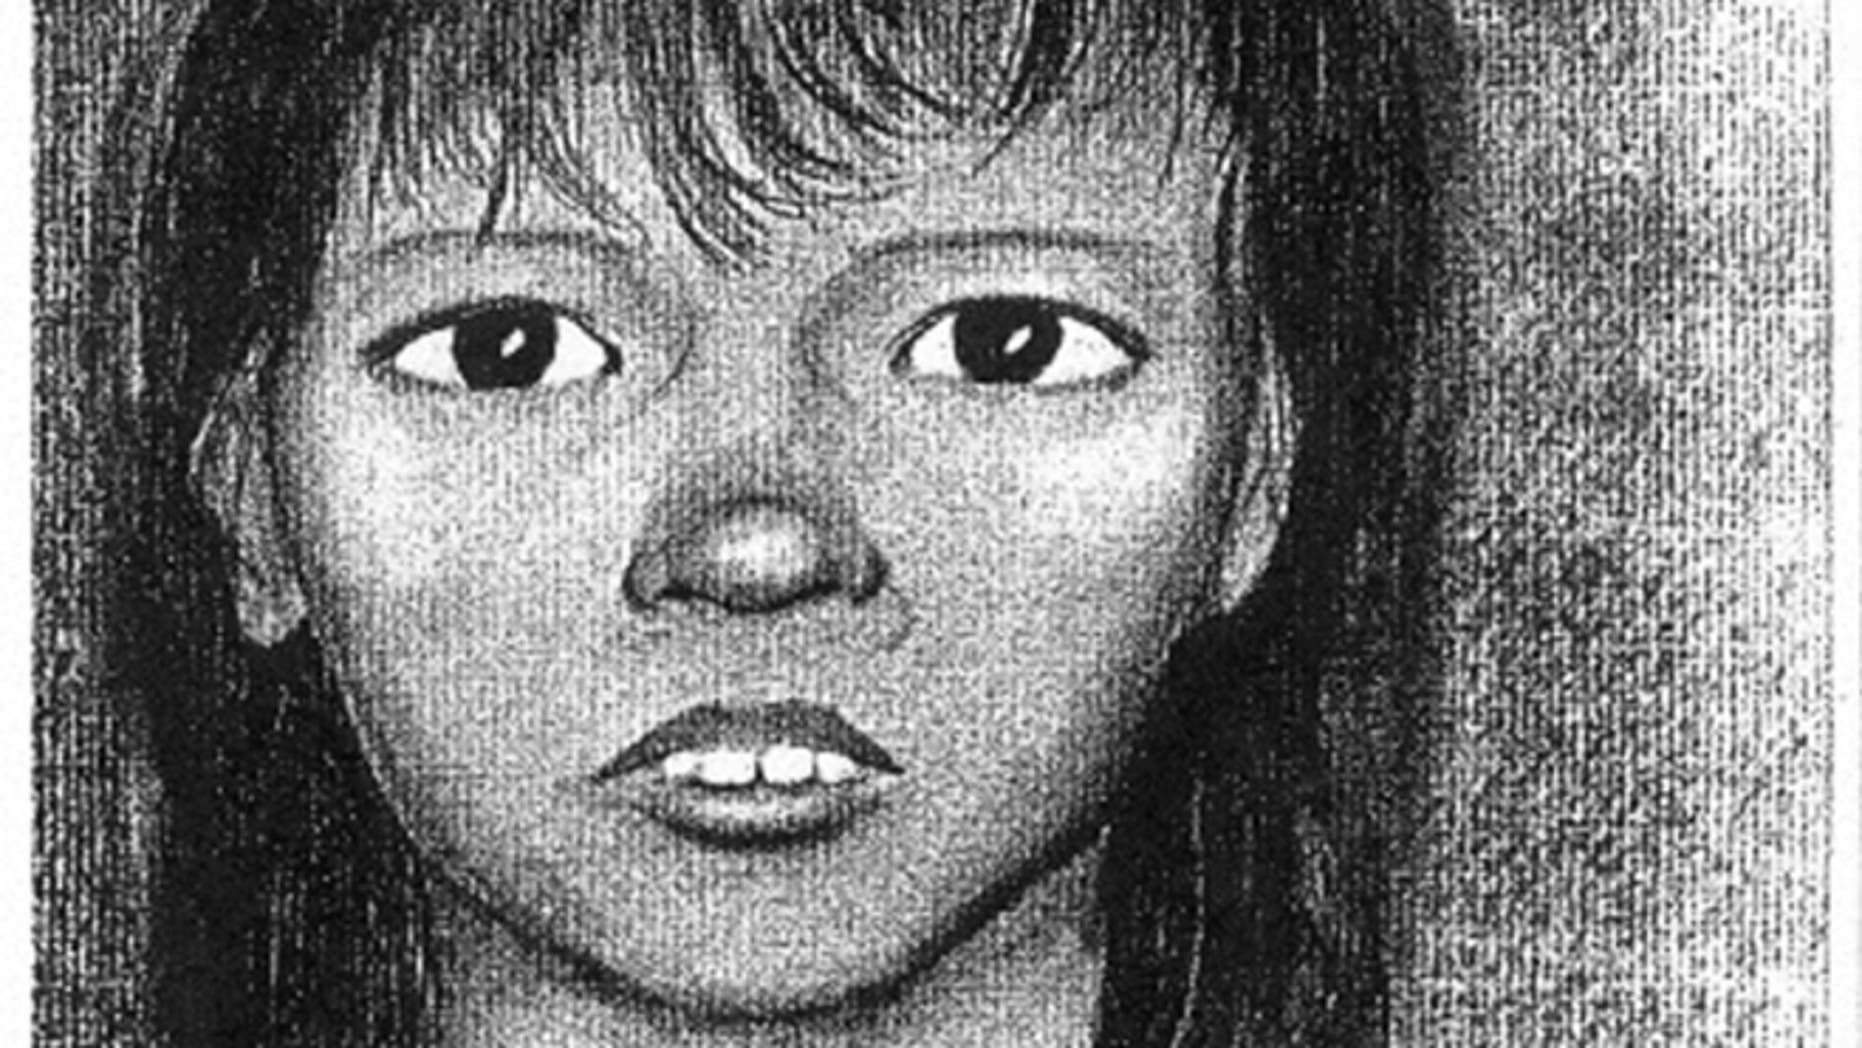 On Tuesday, July 23, 1991 on the embankment of the Henry Hudson parkway S/B of the Dyckman toll plaza the remains of Jane Doe(Baby Hope) were discovered.  Baby Hope was found inside of a Blue and White cooler.  She was malnourished, approximately 25lbs at the time of her death, was determined to be 4 to 4 1/2 years of age and had dark brown or black hair.